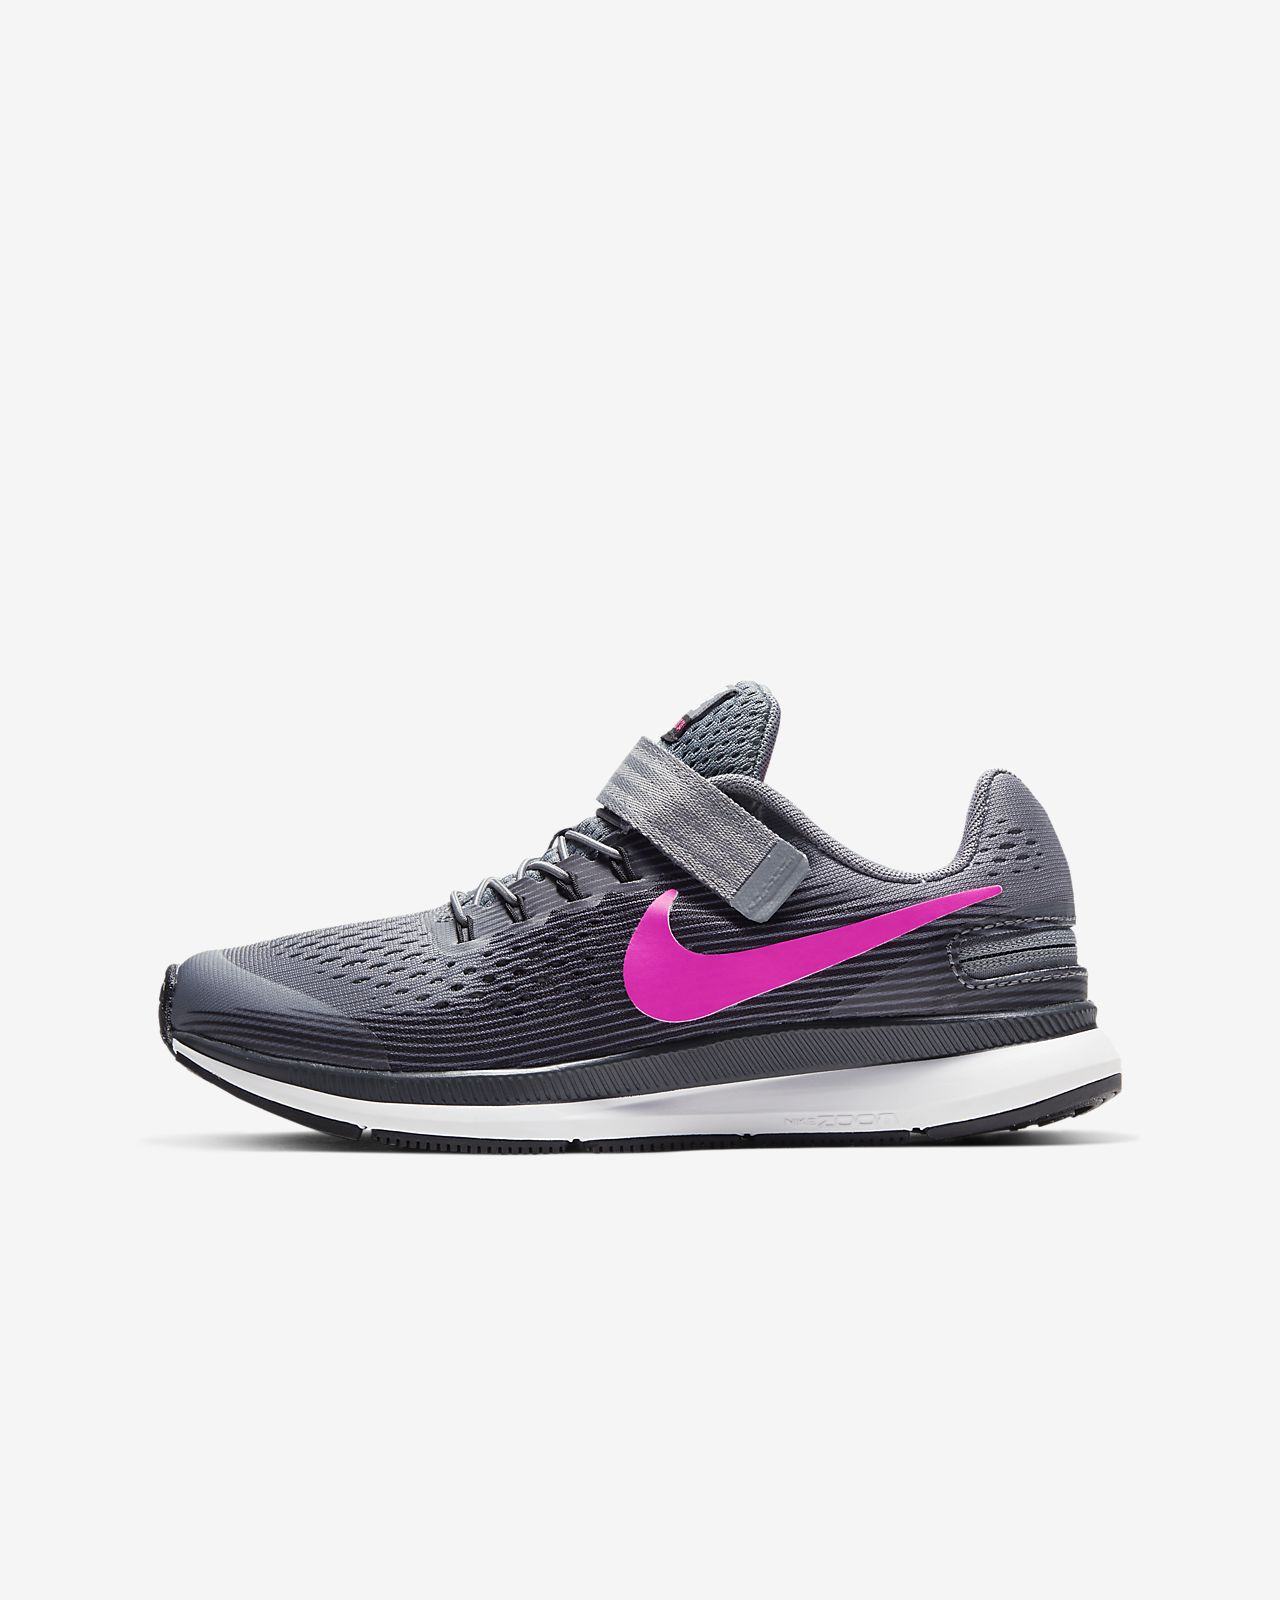 Nike Zoom Pegasus 34 FlyEase Younger/Older Kids' Running Shoe